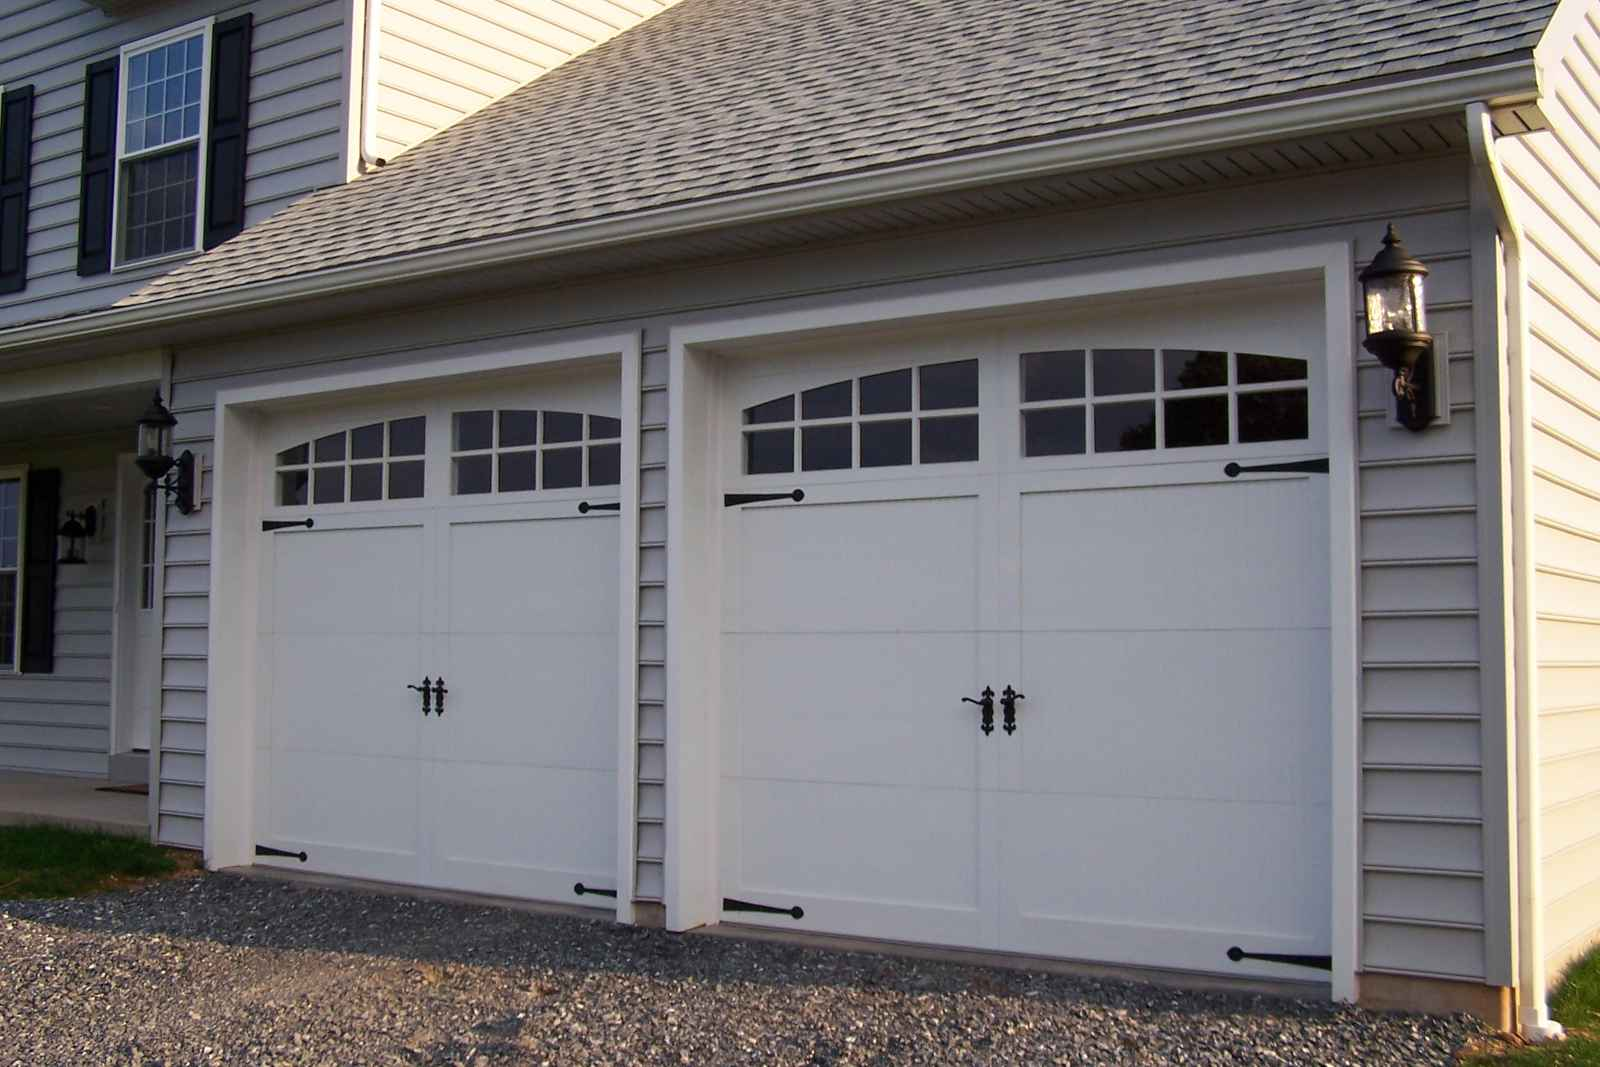 1067 #A98222 Garage Doors Hormann White Cheapest Garage Doors Sunrise Double Garage wallpaper Grarage Doors 38151600